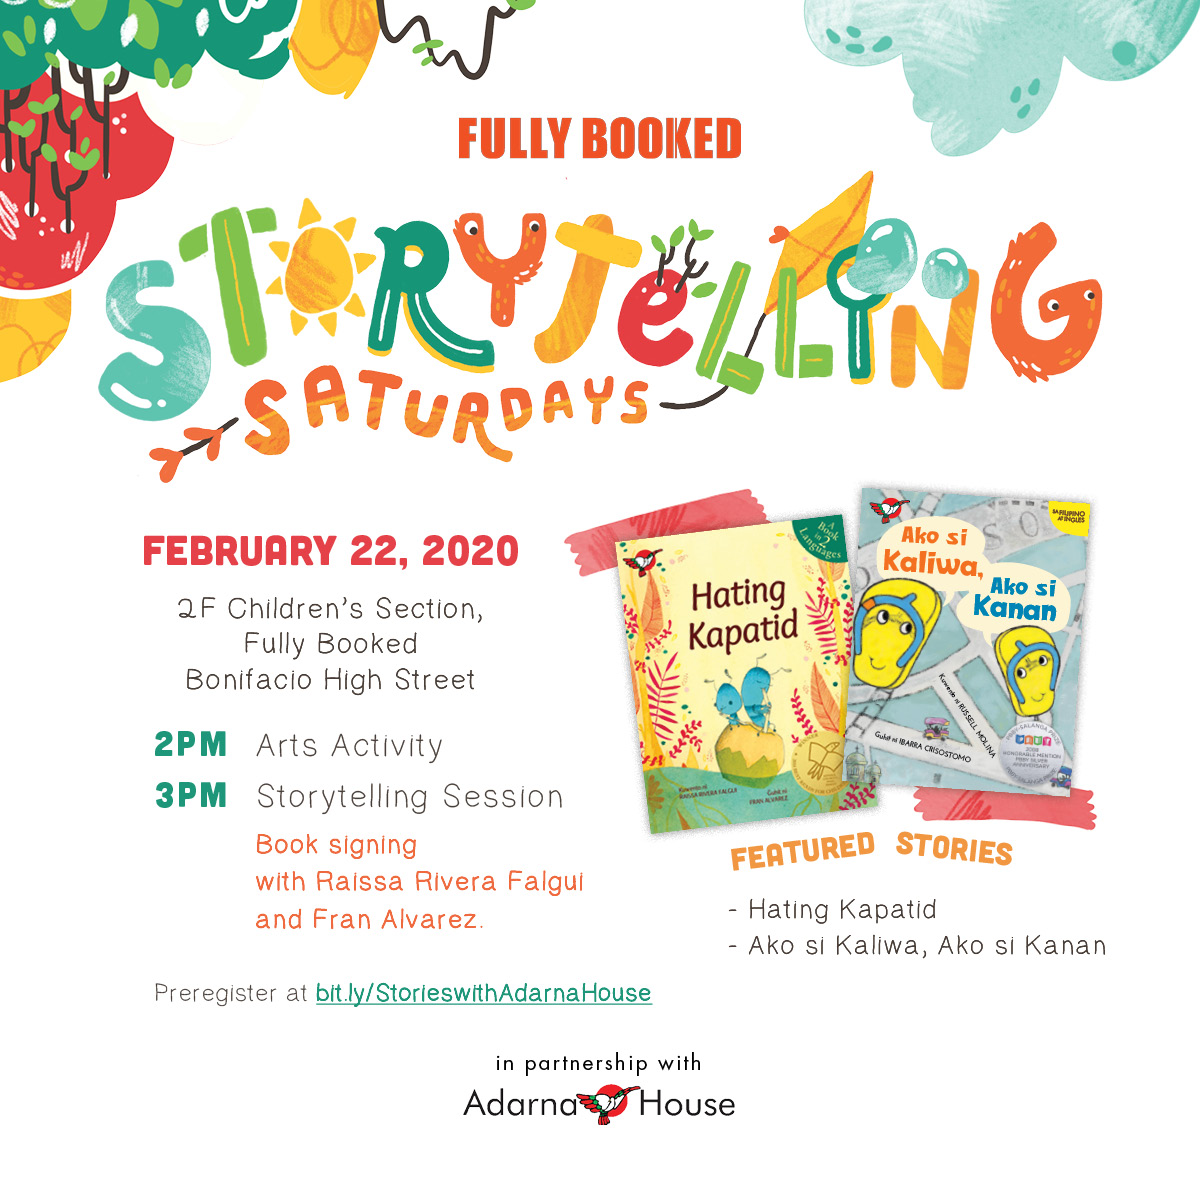 Adarna Storytelling Saturdays